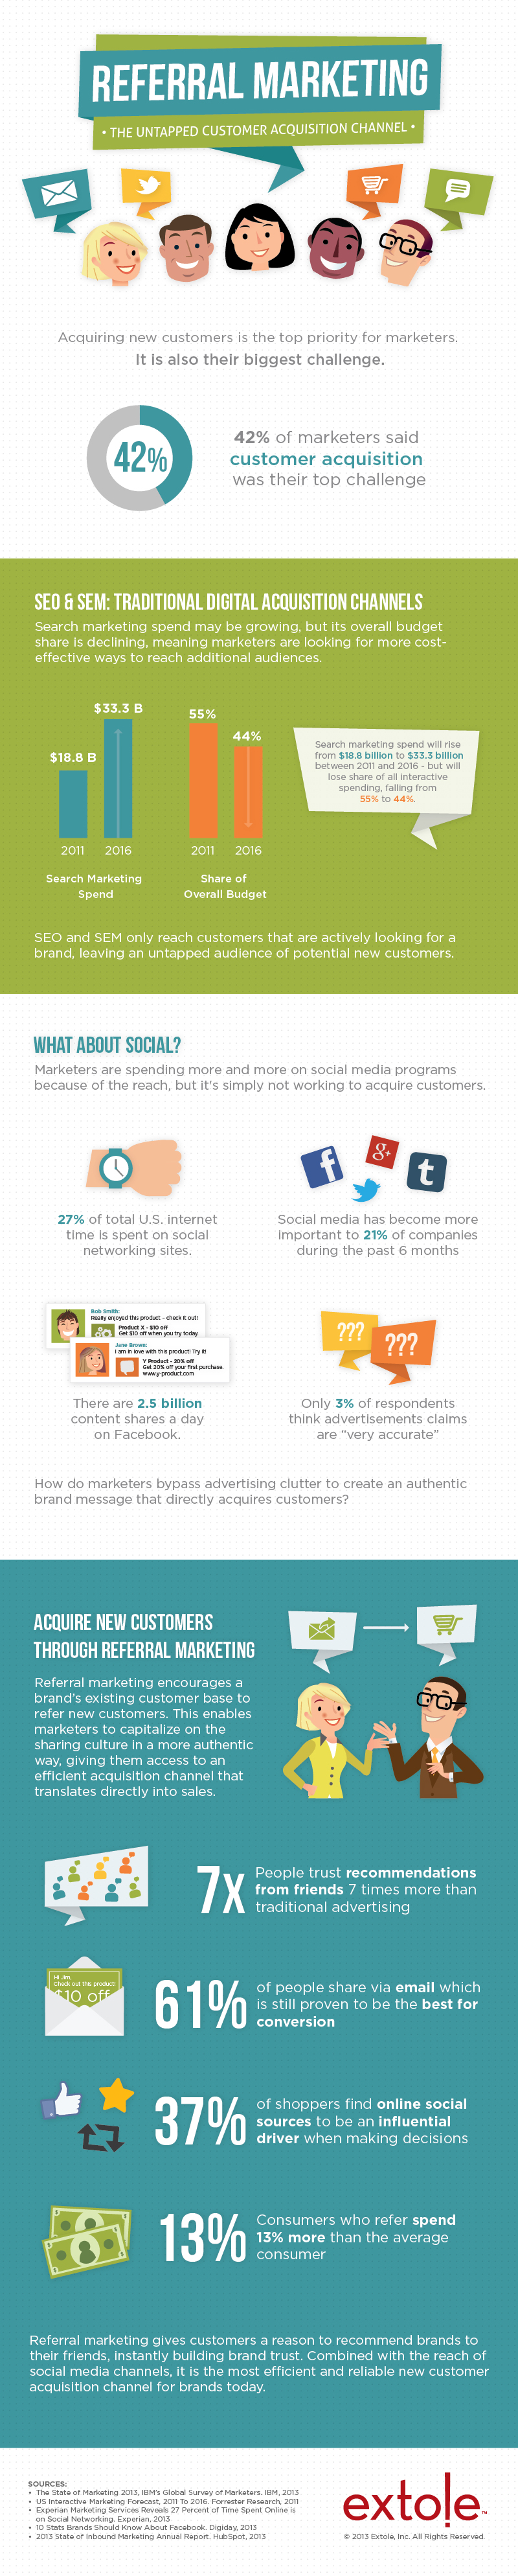 Referral Marketing and Customer Acquisition Channels